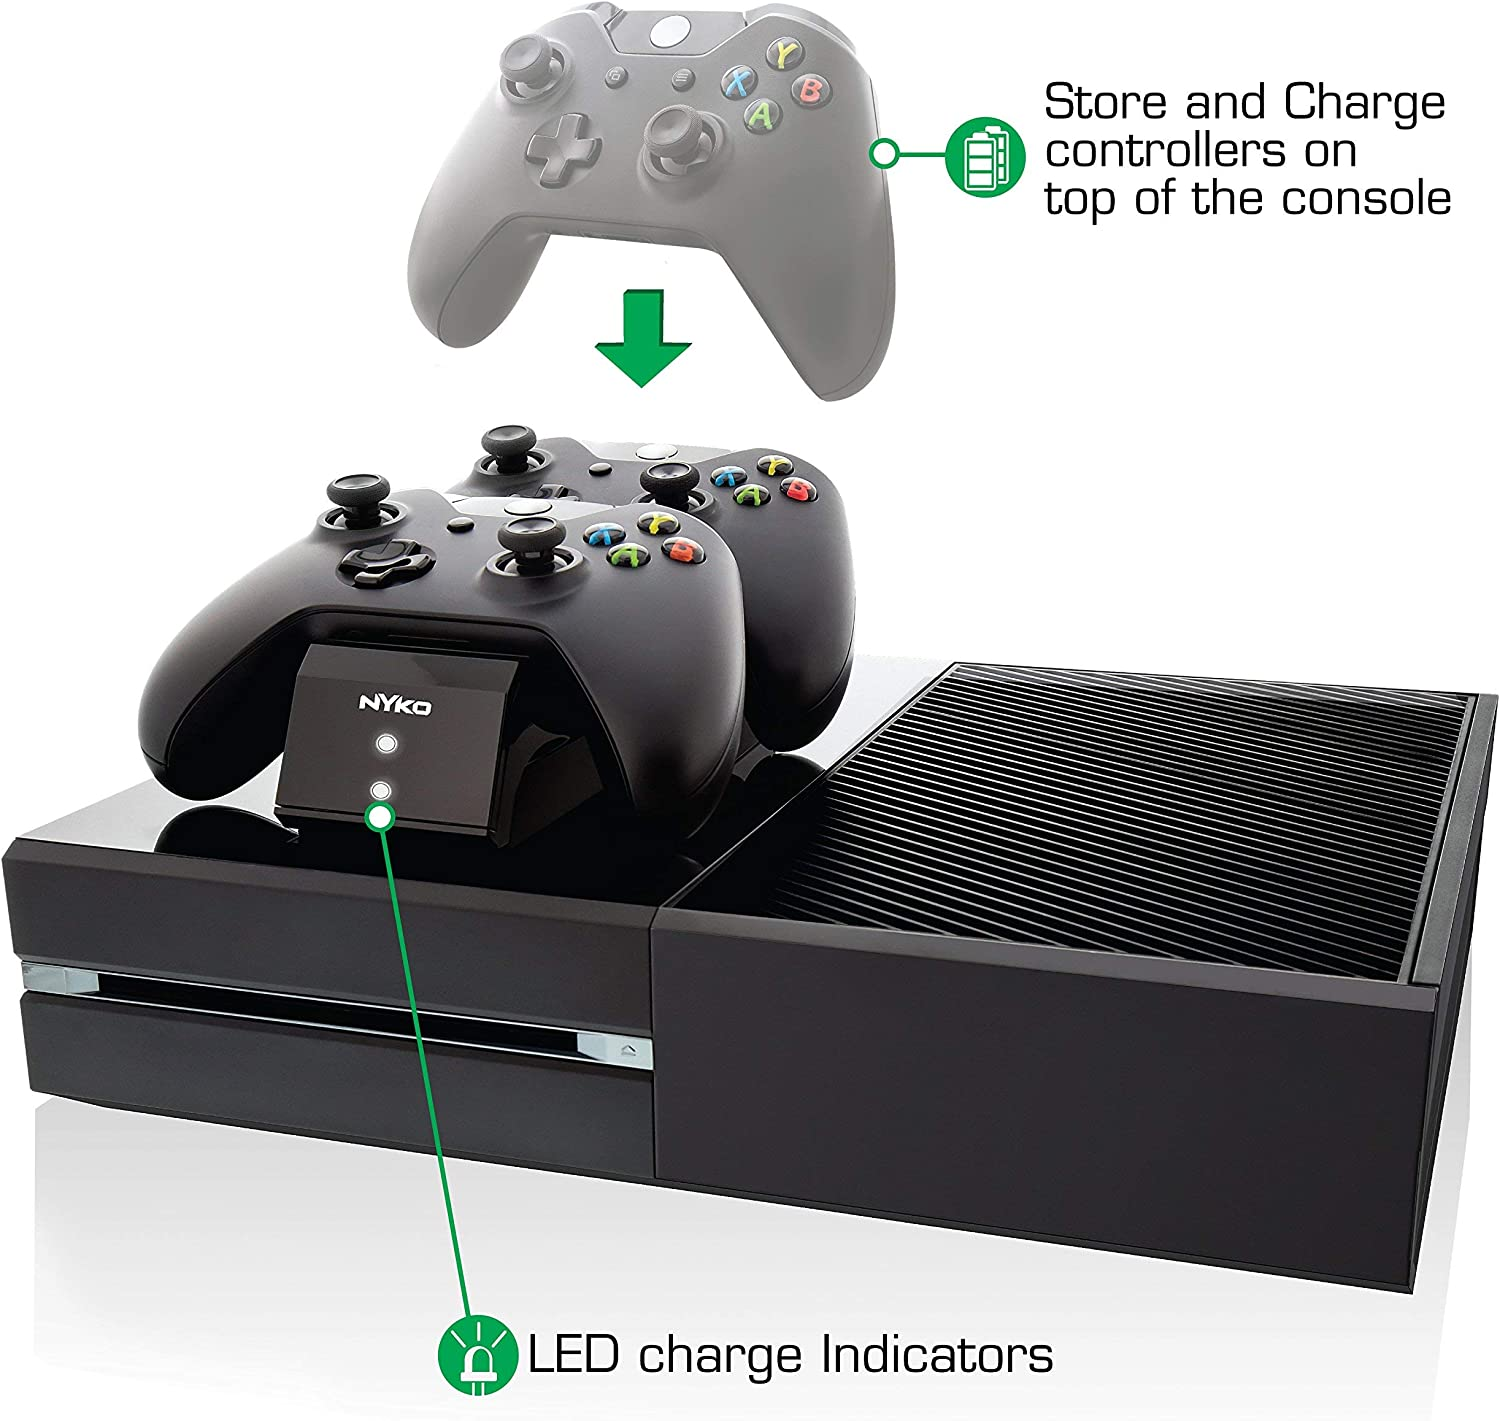 Nyko Modular Charge Station 2 Port Controller Charging Station with 2 Rechargeable Battery Packs for Xbox One Renewed